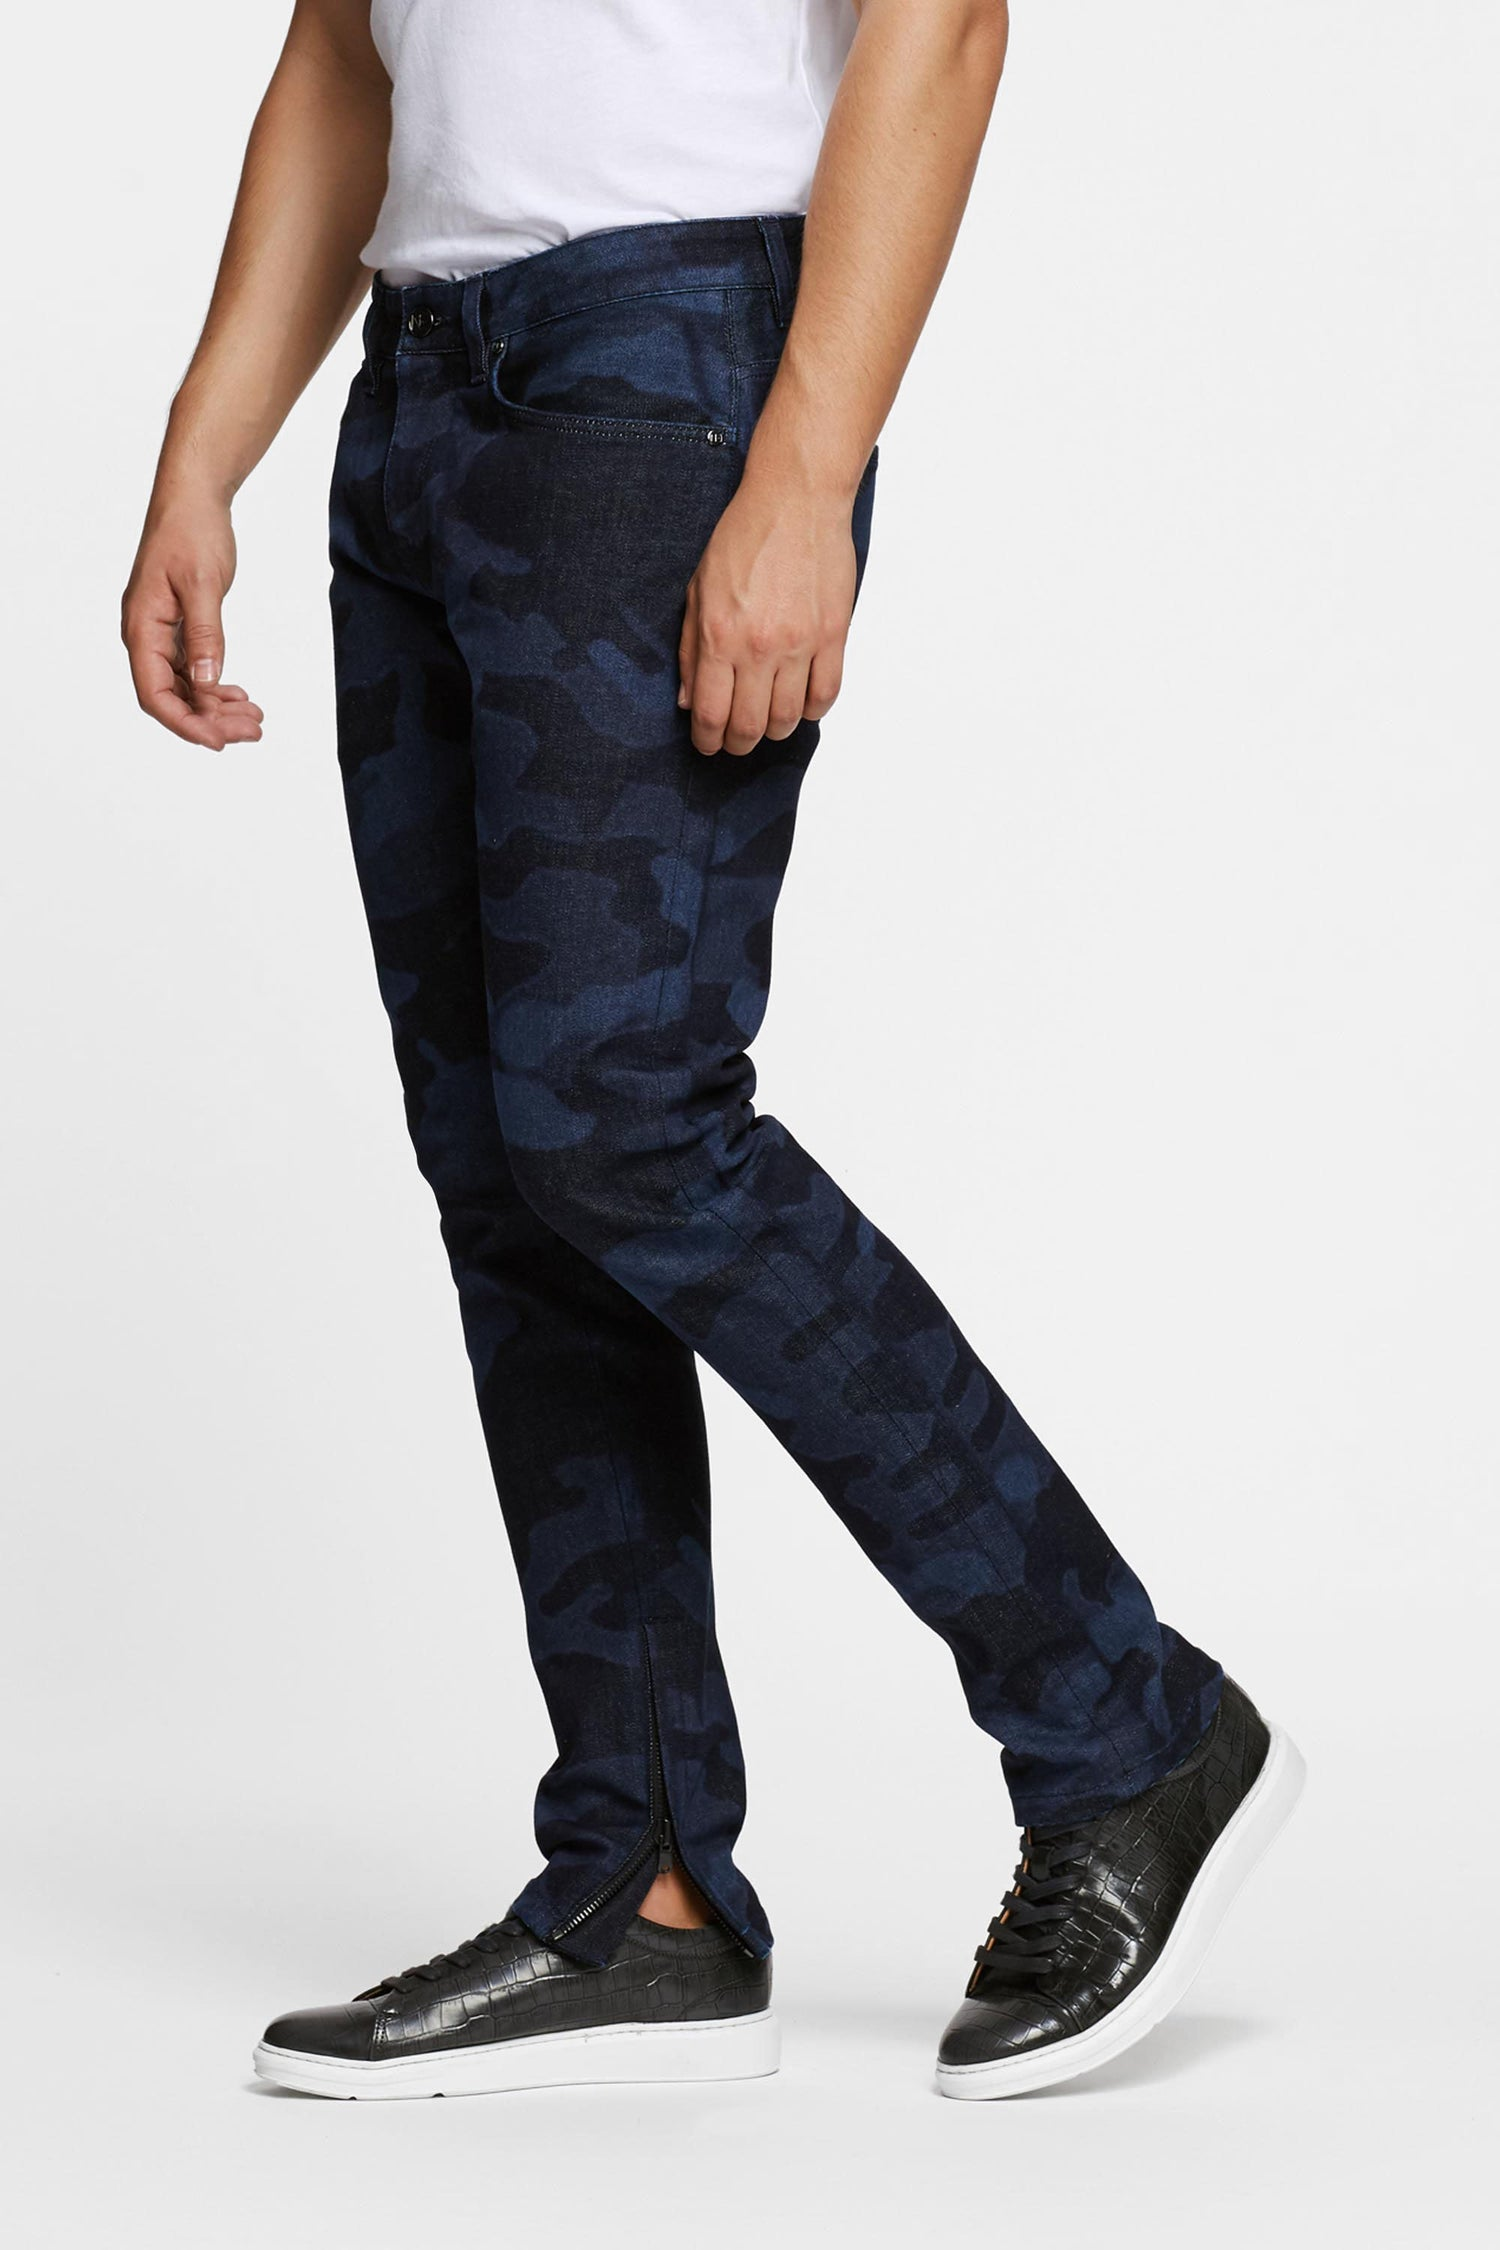 https://cdn.shopify.com/s/files/1/2973/0680/files/LASER_MILITARY_ZIP_JEAN.mp4?1318584067511151134